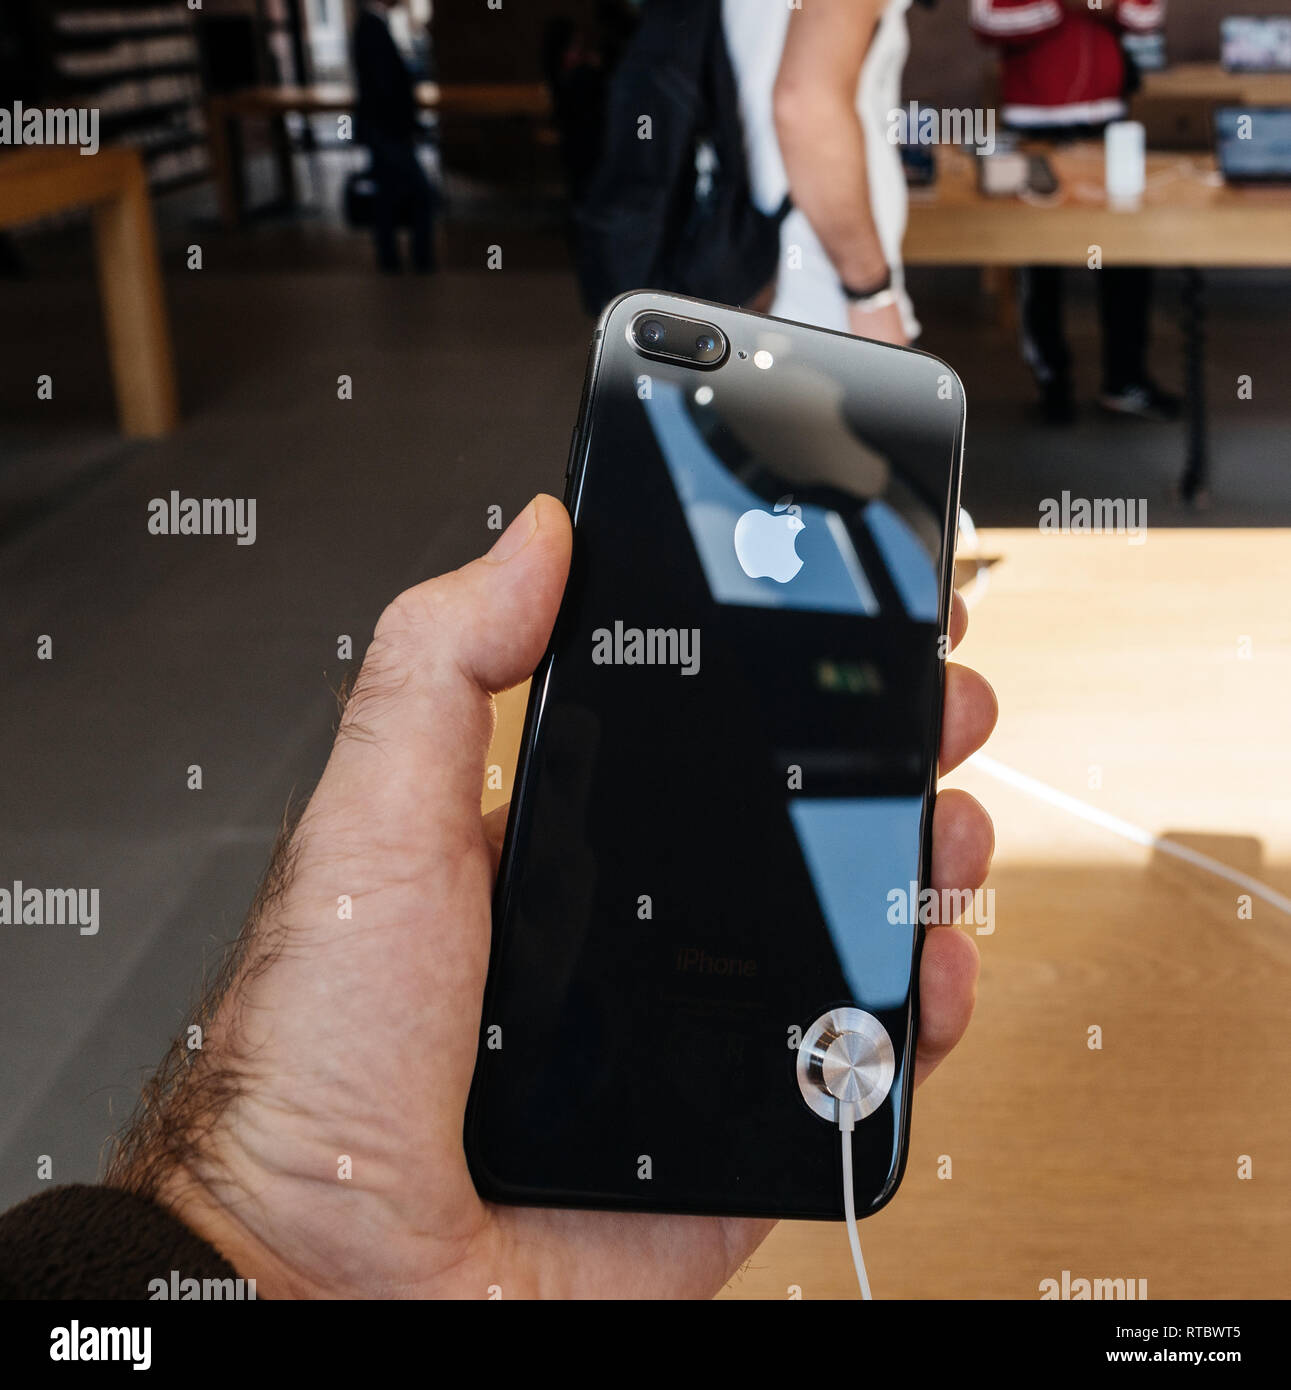 PARIS, FRANCE - SEP 22, 2017: New iPhone 8 and iPhone 8 Plus, as well the updated Apple Watch, Apple TV goes on sale today in Apple Store with customer holding the phone looking at the glass body  Stock Photo